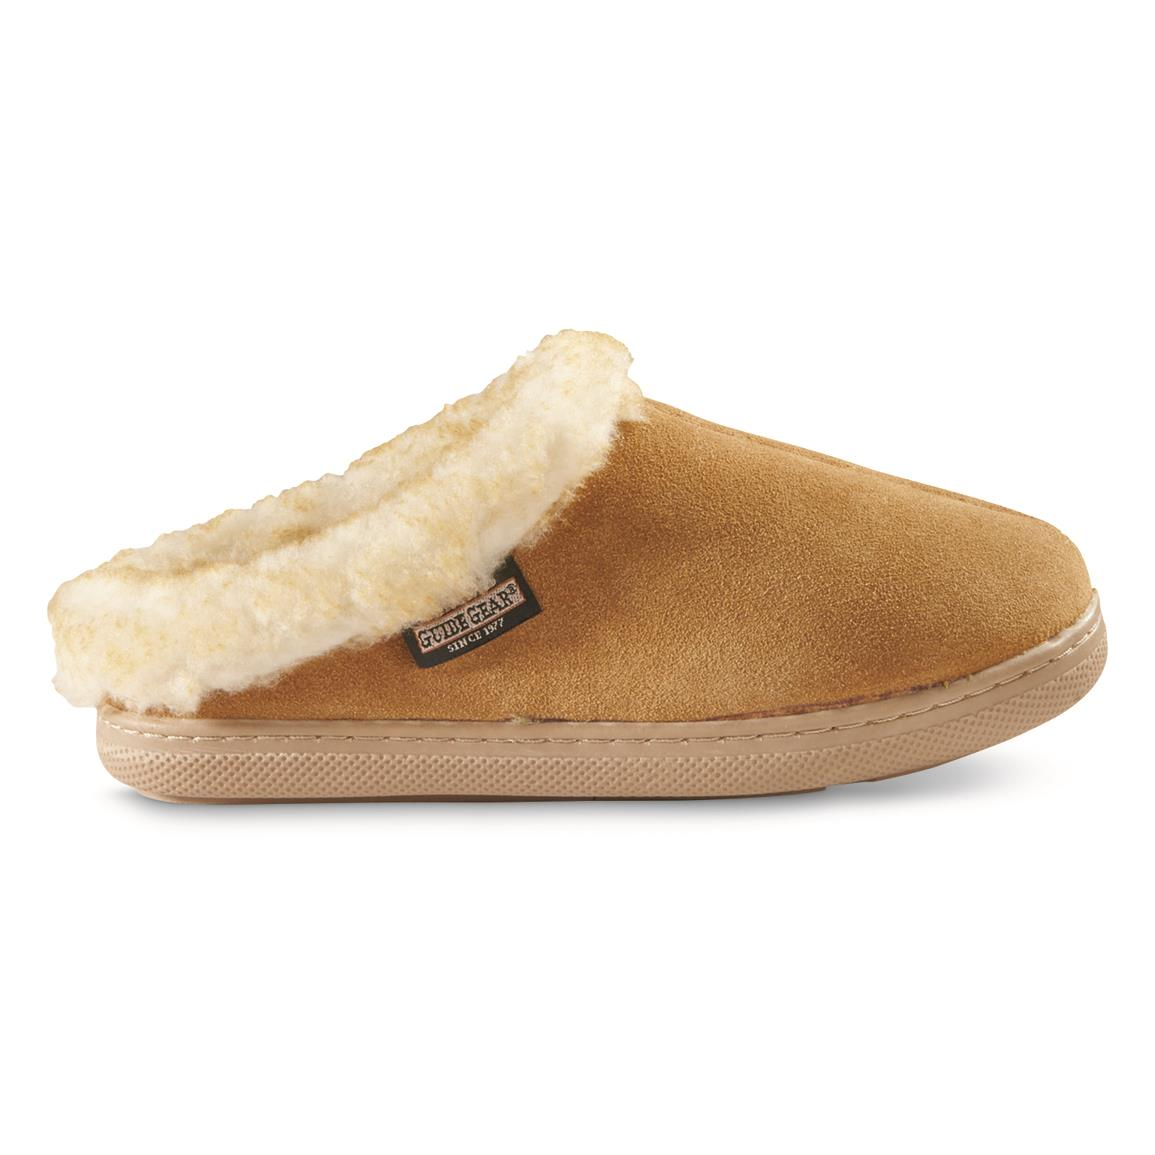 Genuine cowhide suede uppers look great and wear long